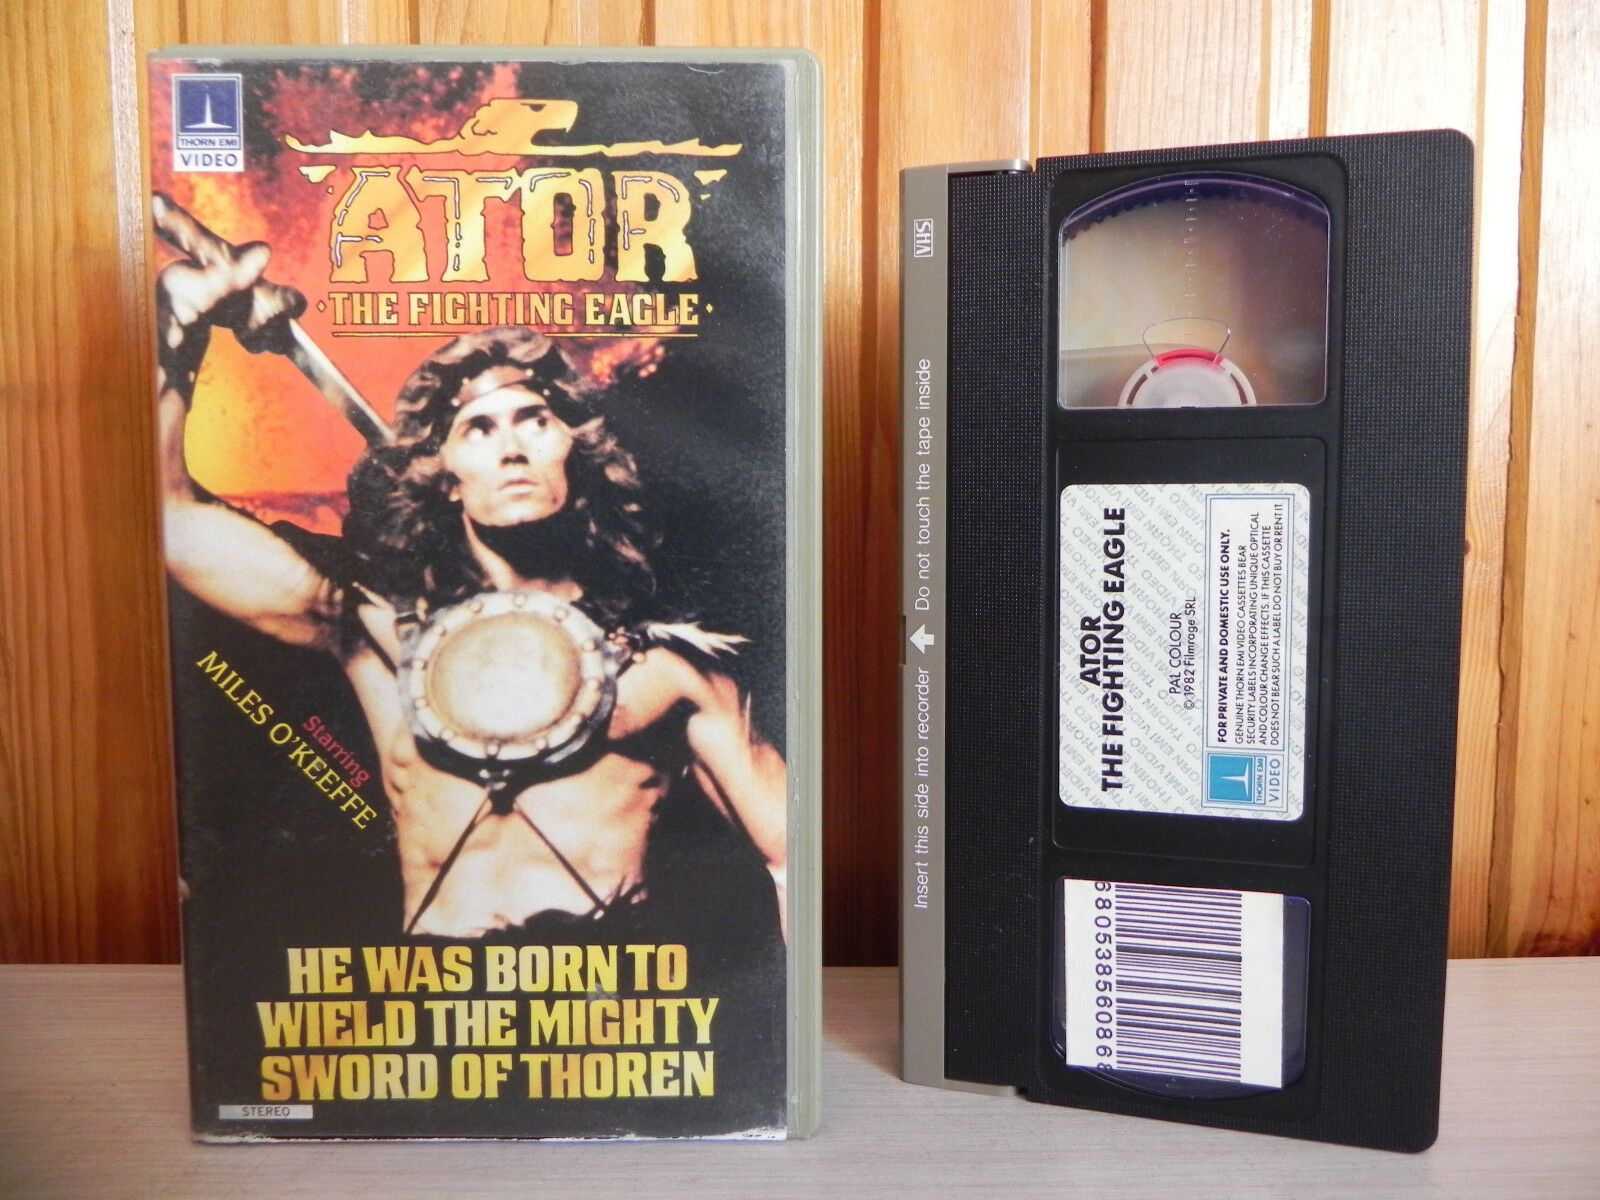 1982, Action & Adventure, Ator, Ator The Fighting Eagle, Big, Box, Cert, Eagle, Ex, Fantasy, Fighting, Joe D'Amato, Miles, Miles O'Keeffe, PAL, PG, Pre, Pre Cert, Rental, Sabrina Siani, The, United States, VHS